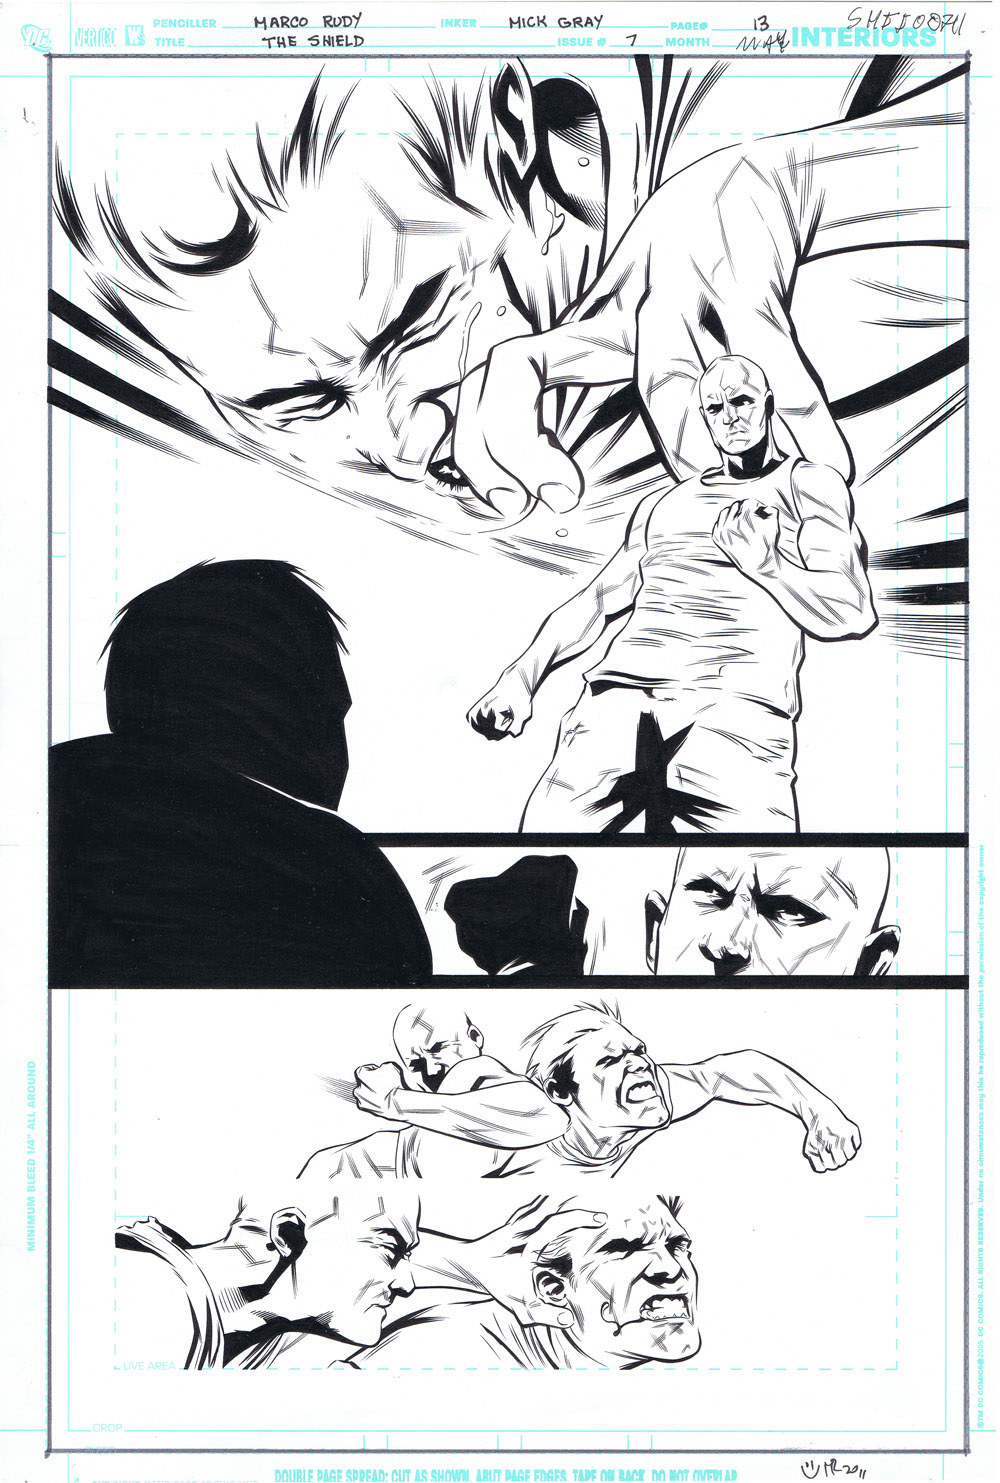 The Shield #07 - page 13